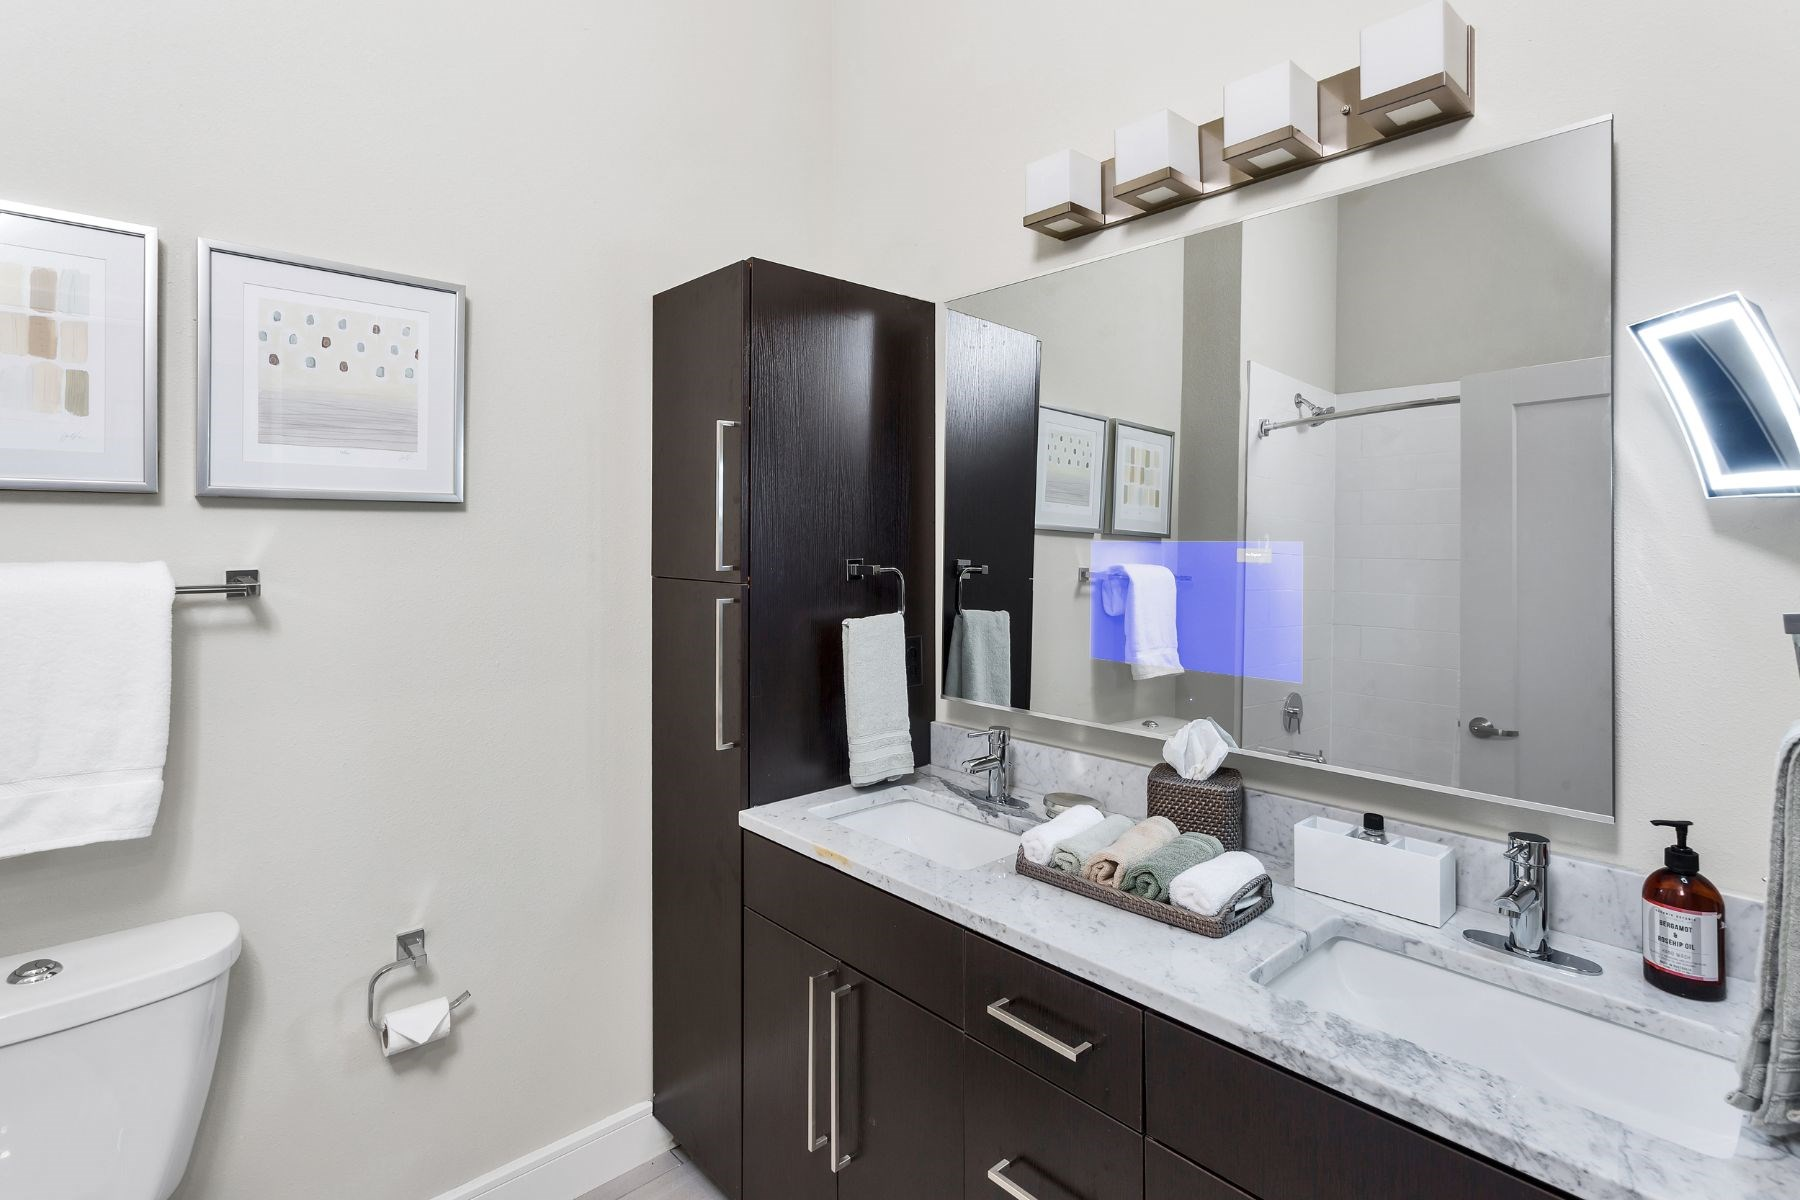 Westwood Green Apartments Bathroom Vanity with embedded tv in mirror and quarts countertop with 2 undermount sinks